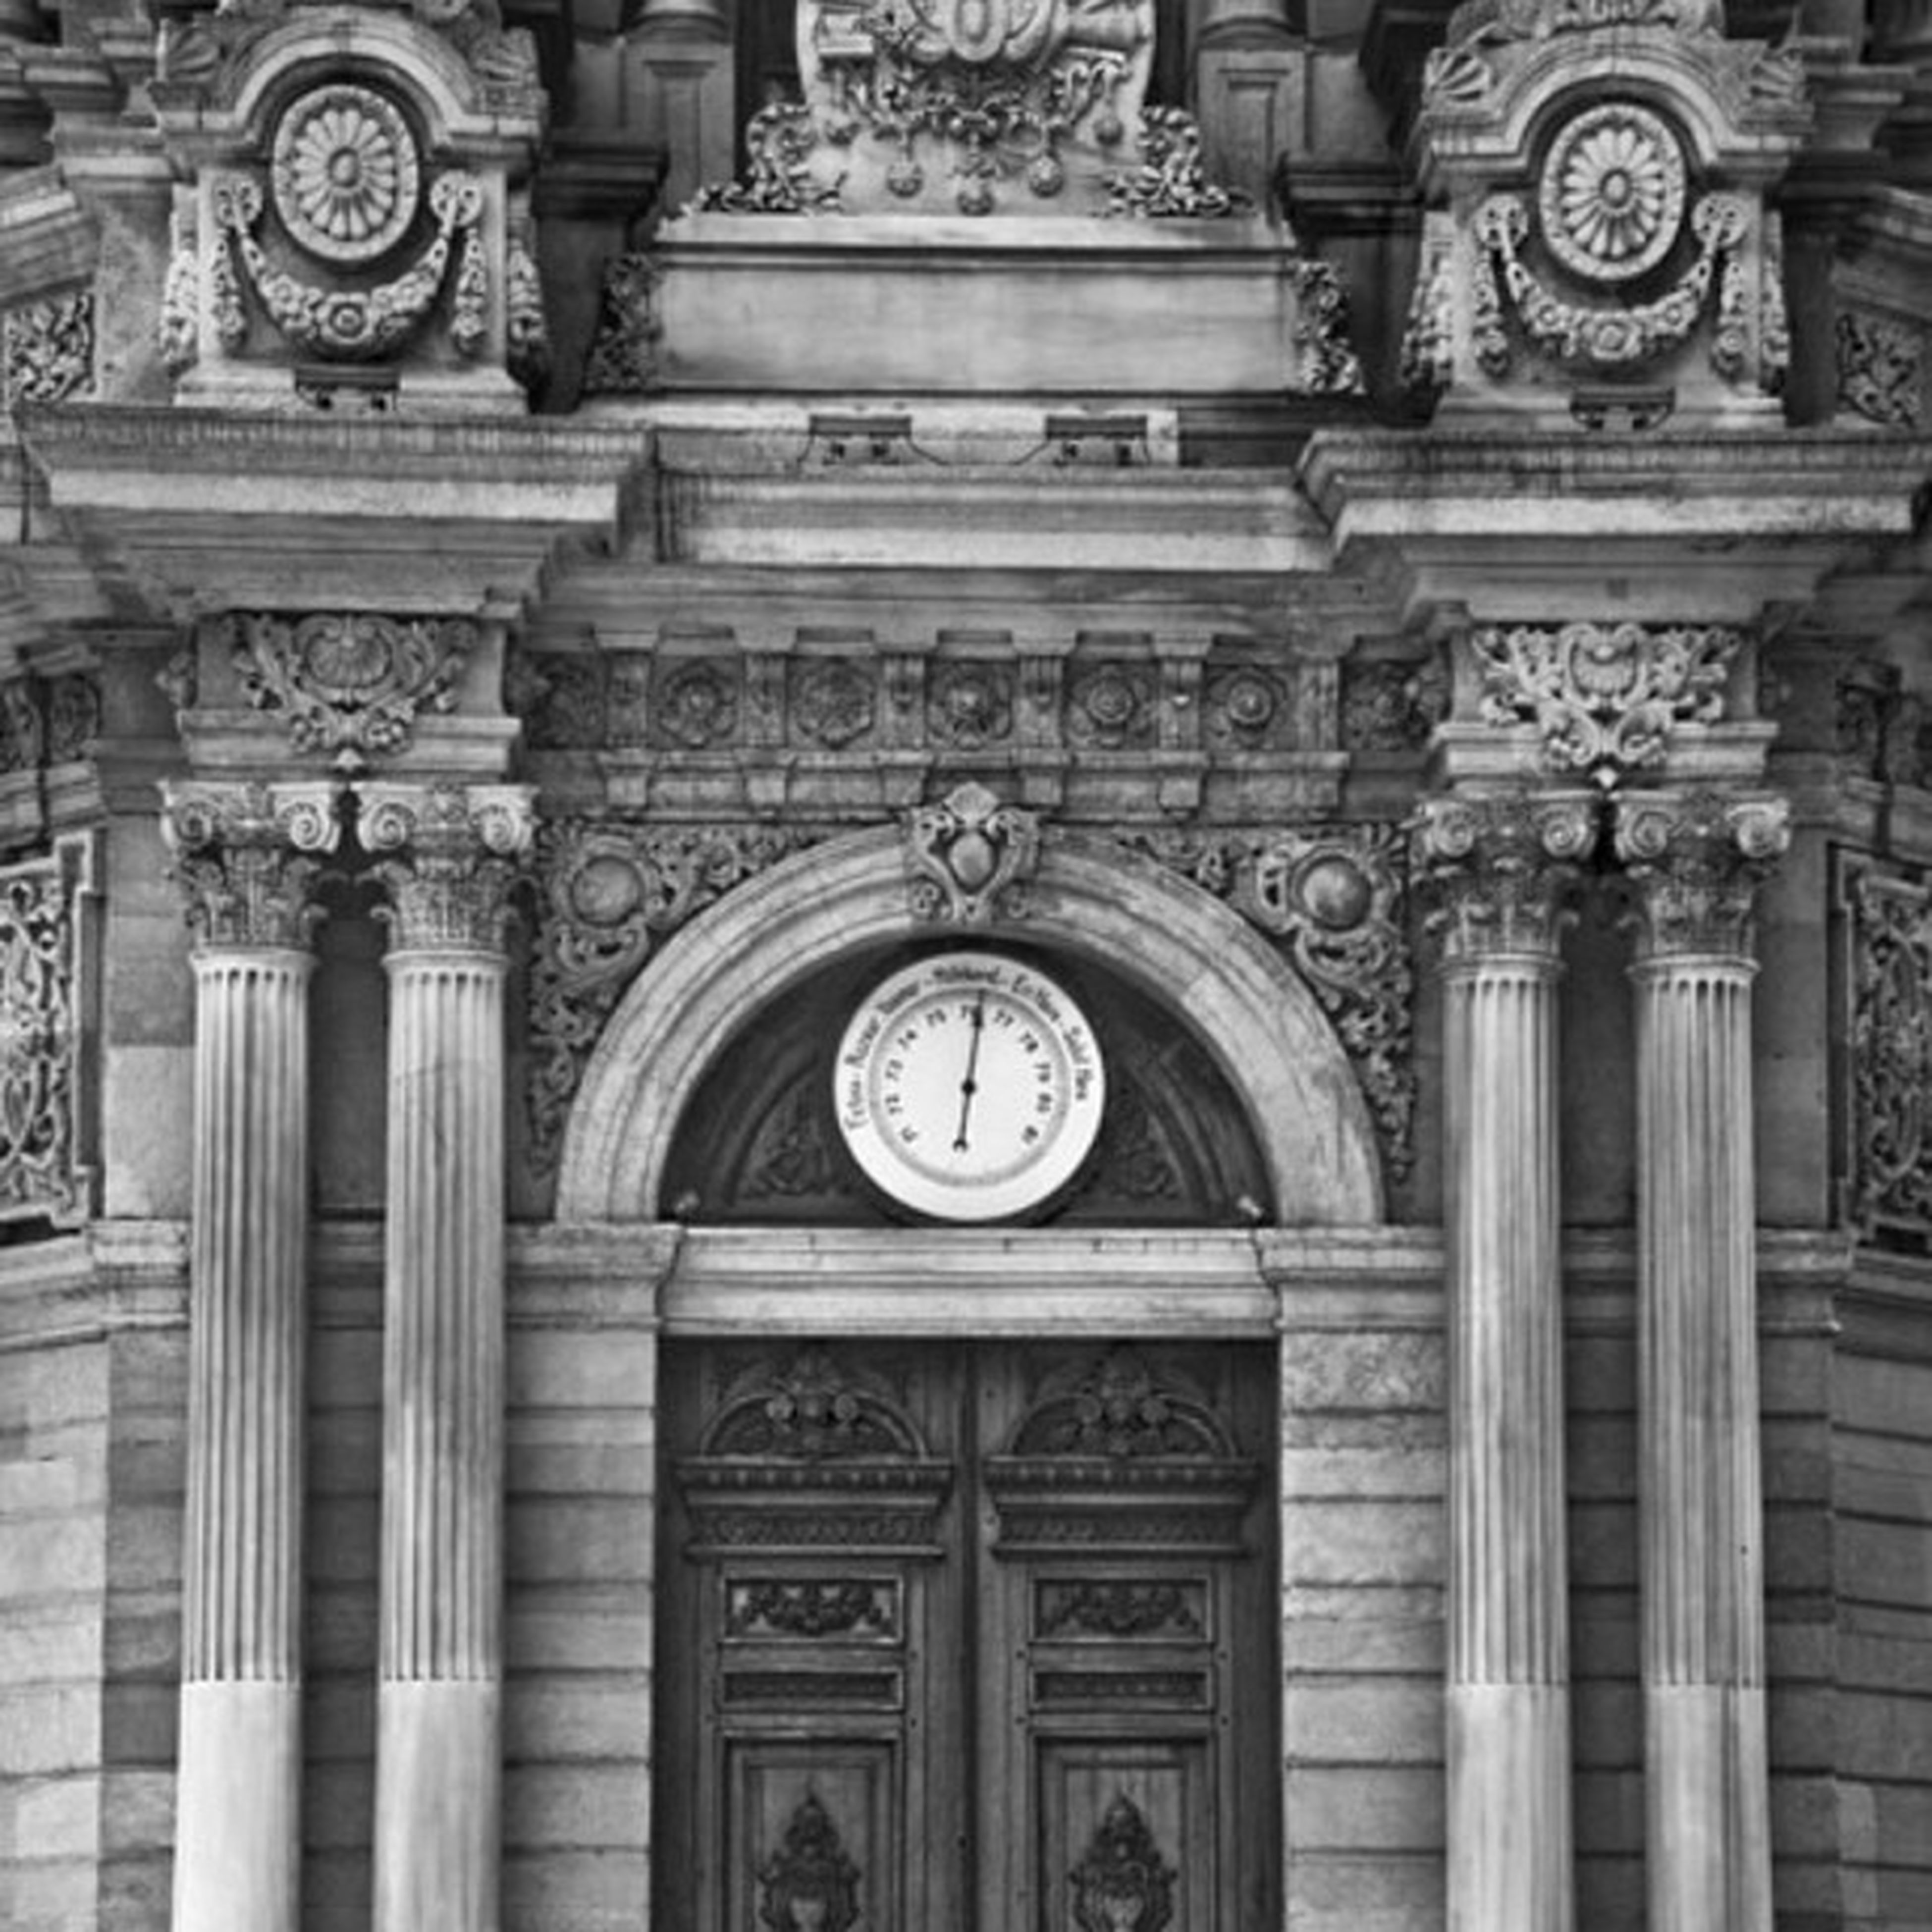 architecture, built structure, ornate, carving - craft product, art and craft, building exterior, low angle view, history, religion, art, human representation, creativity, place of worship, church, arch, clock, design, carving, old